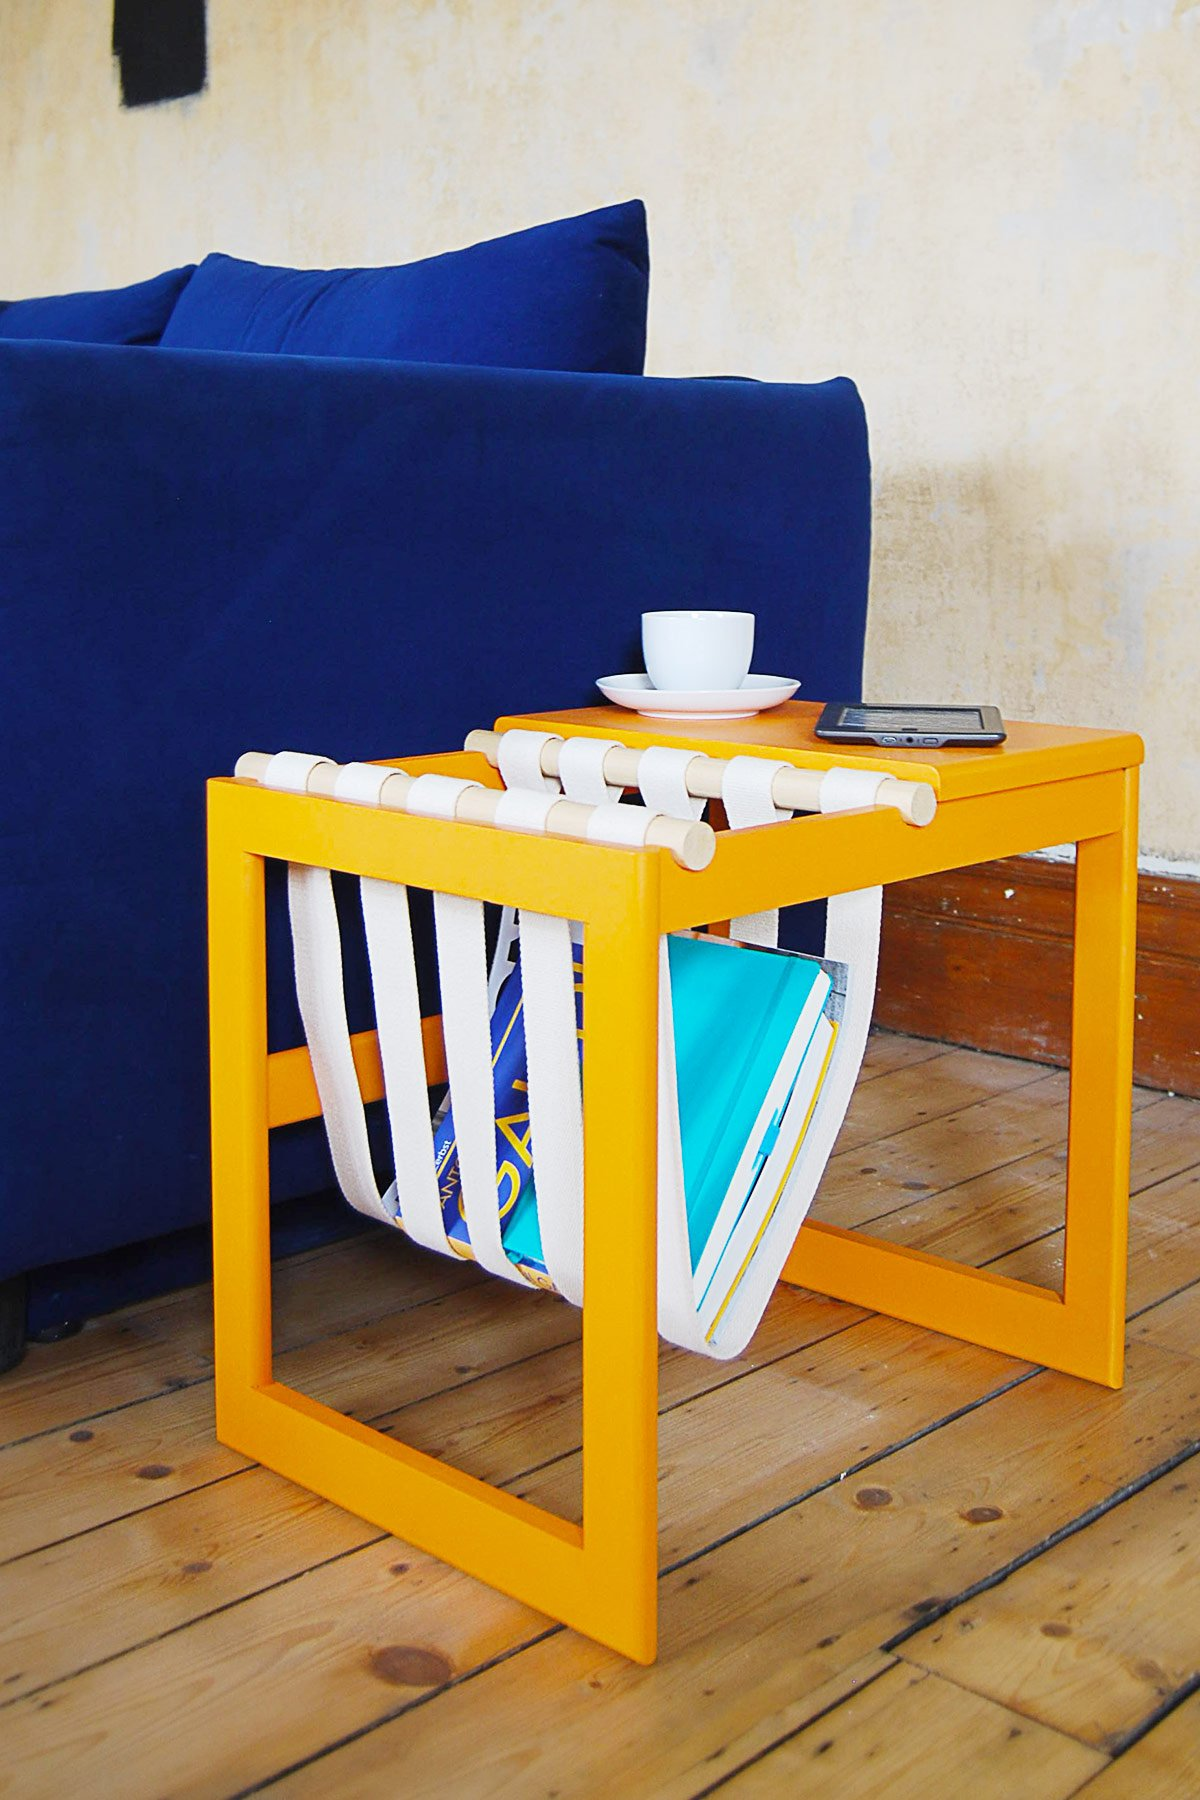 DIY Magazine Holder | Little House On The Corner